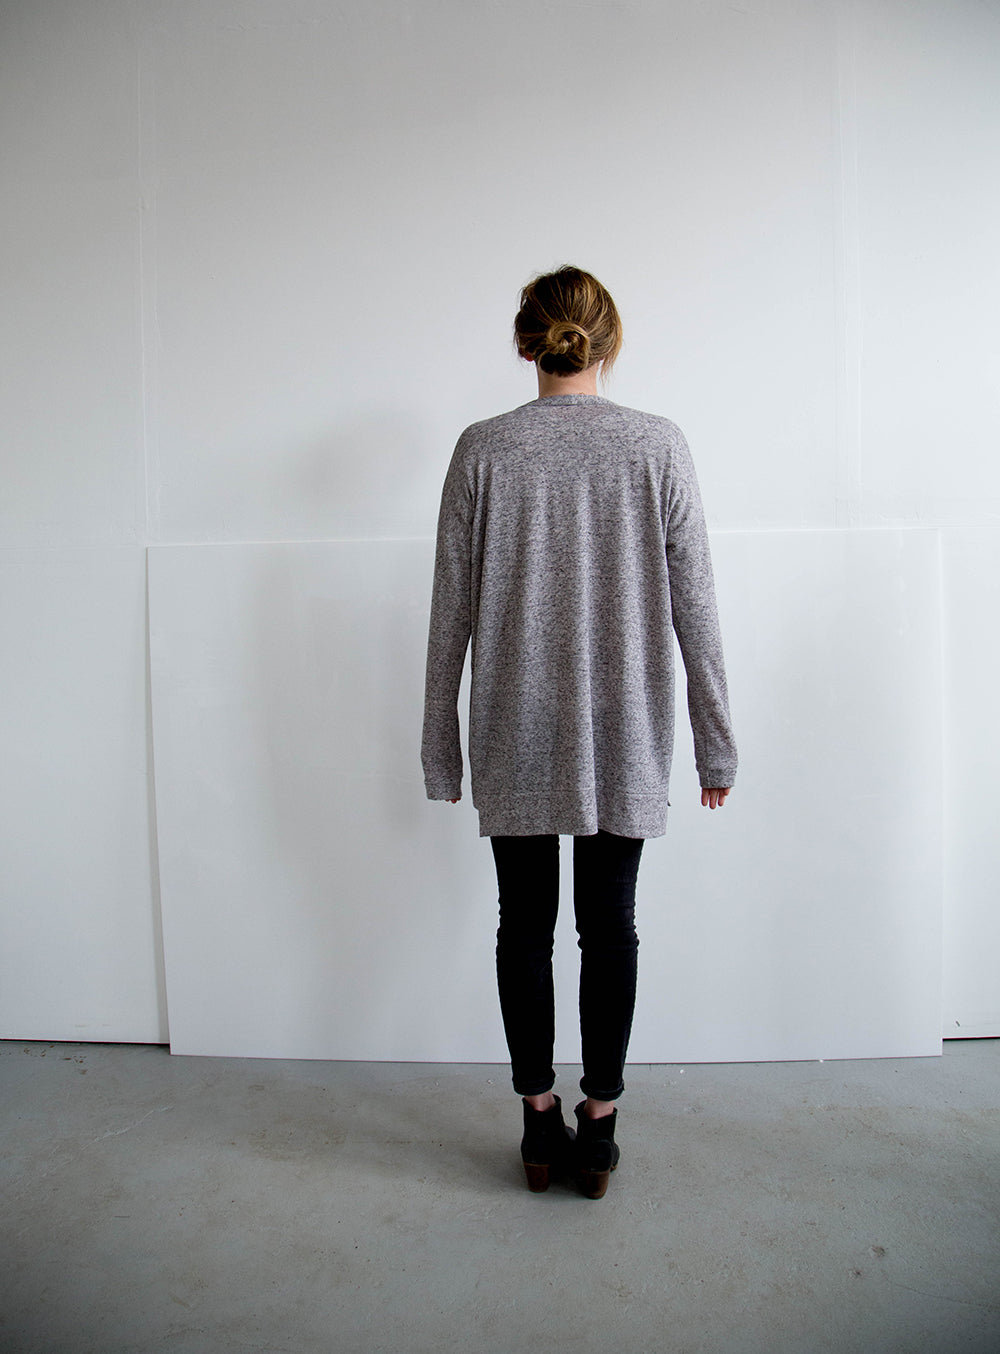 Grainline Studio | Driftless Cardigan